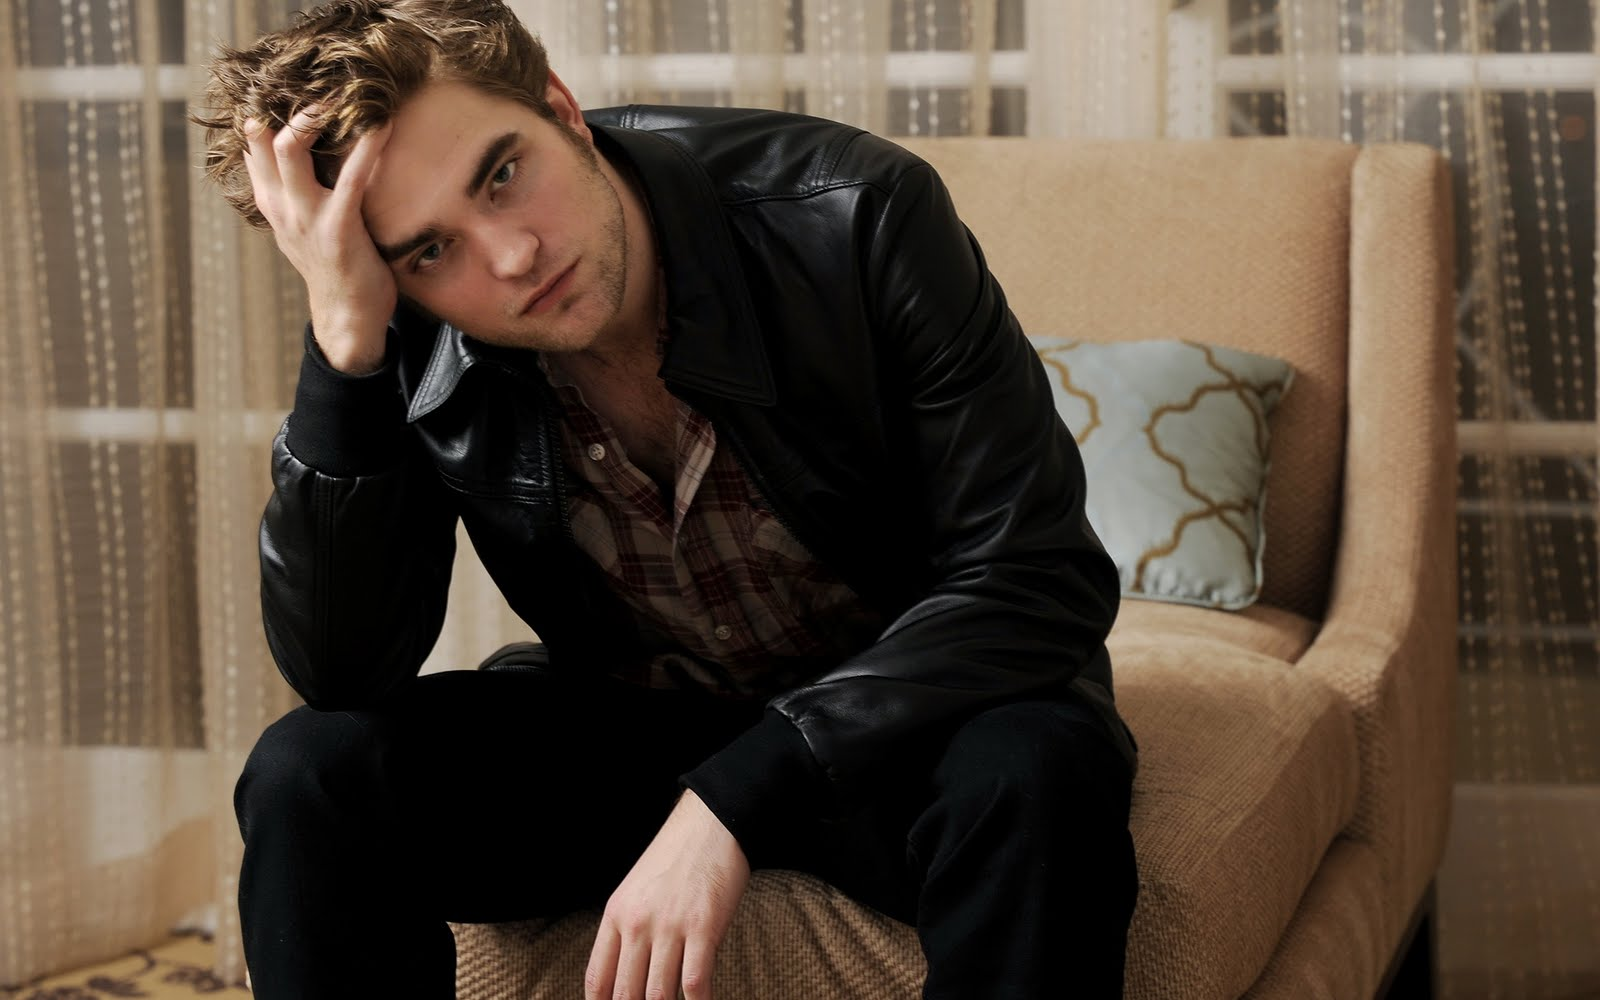 http://2.bp.blogspot.com/_Ym3du2sG3R4/TKy7_tKdkbI/AAAAAAAAC4Y/Sj_8Uh5gBiE/s1600/robert-pattinson-wallpapers_1920x1200.jpg